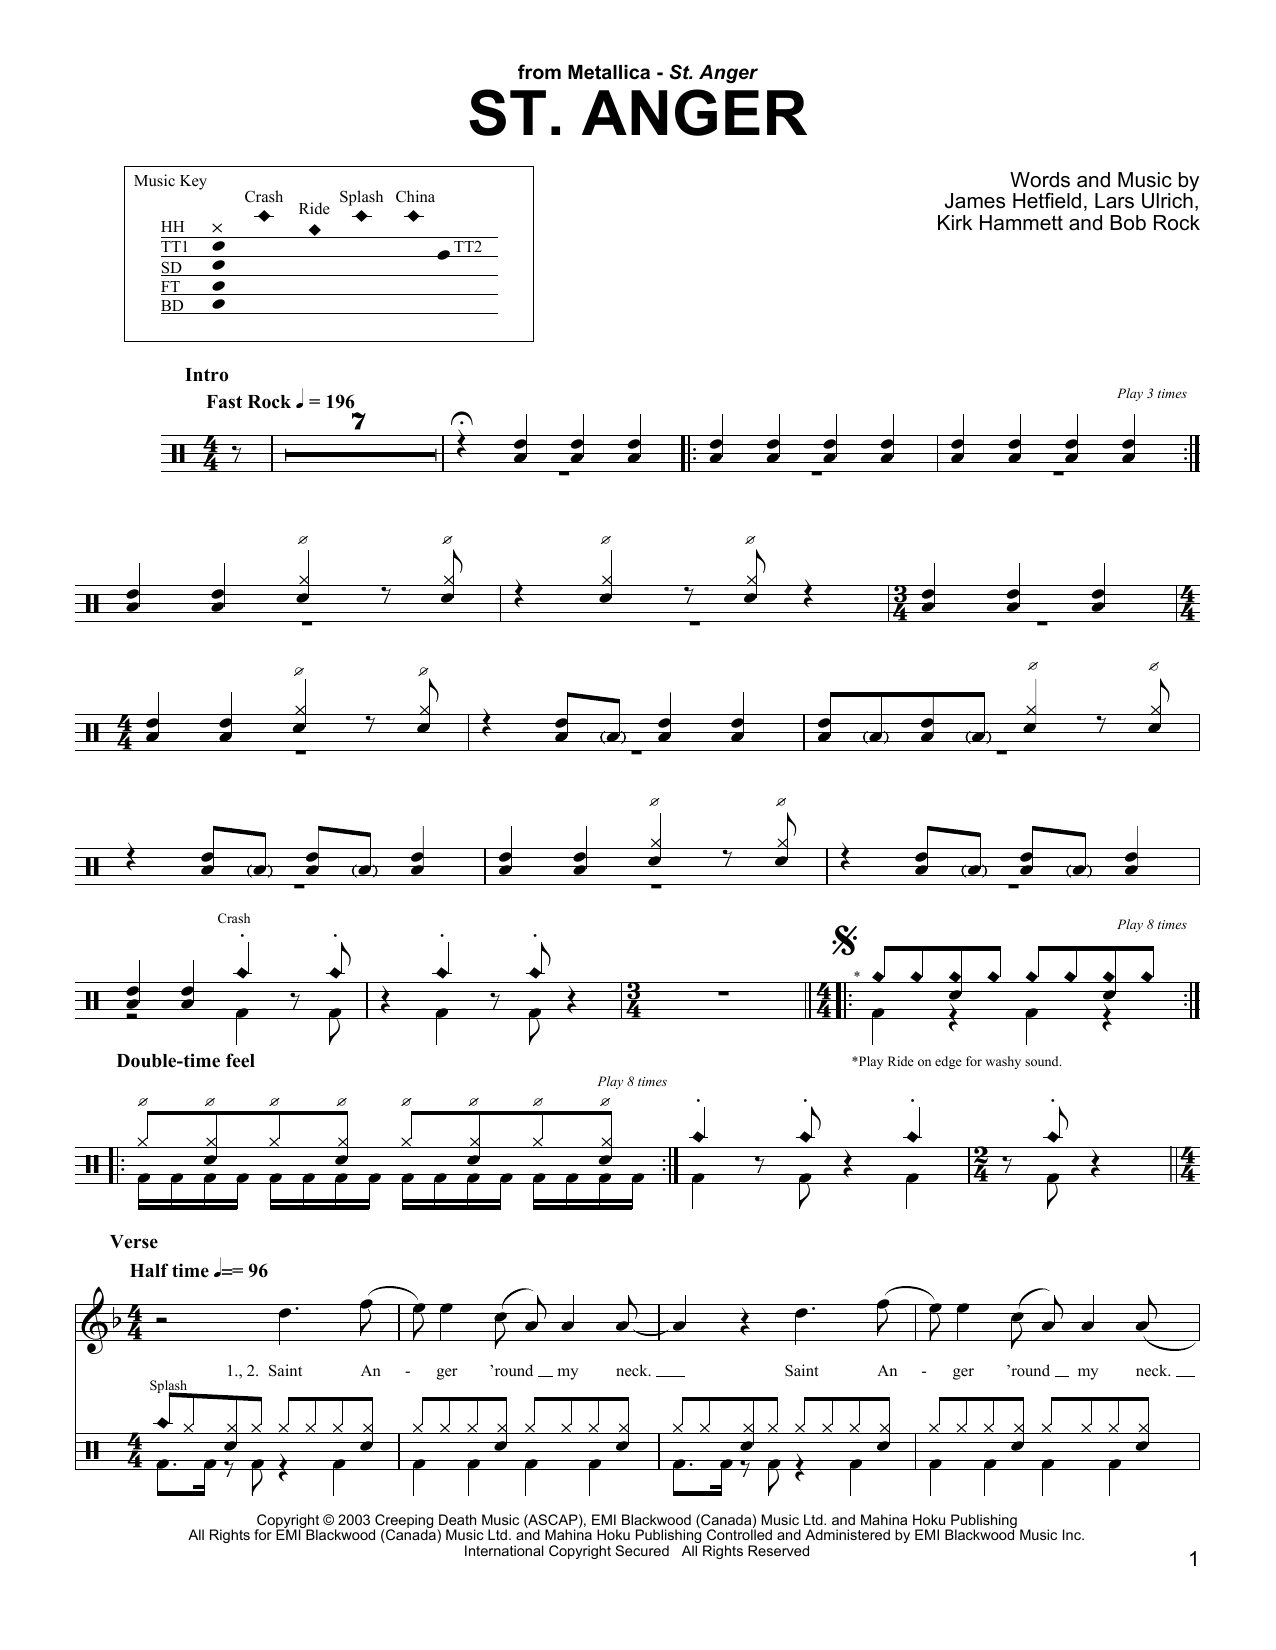 St. Anger Sheet Music